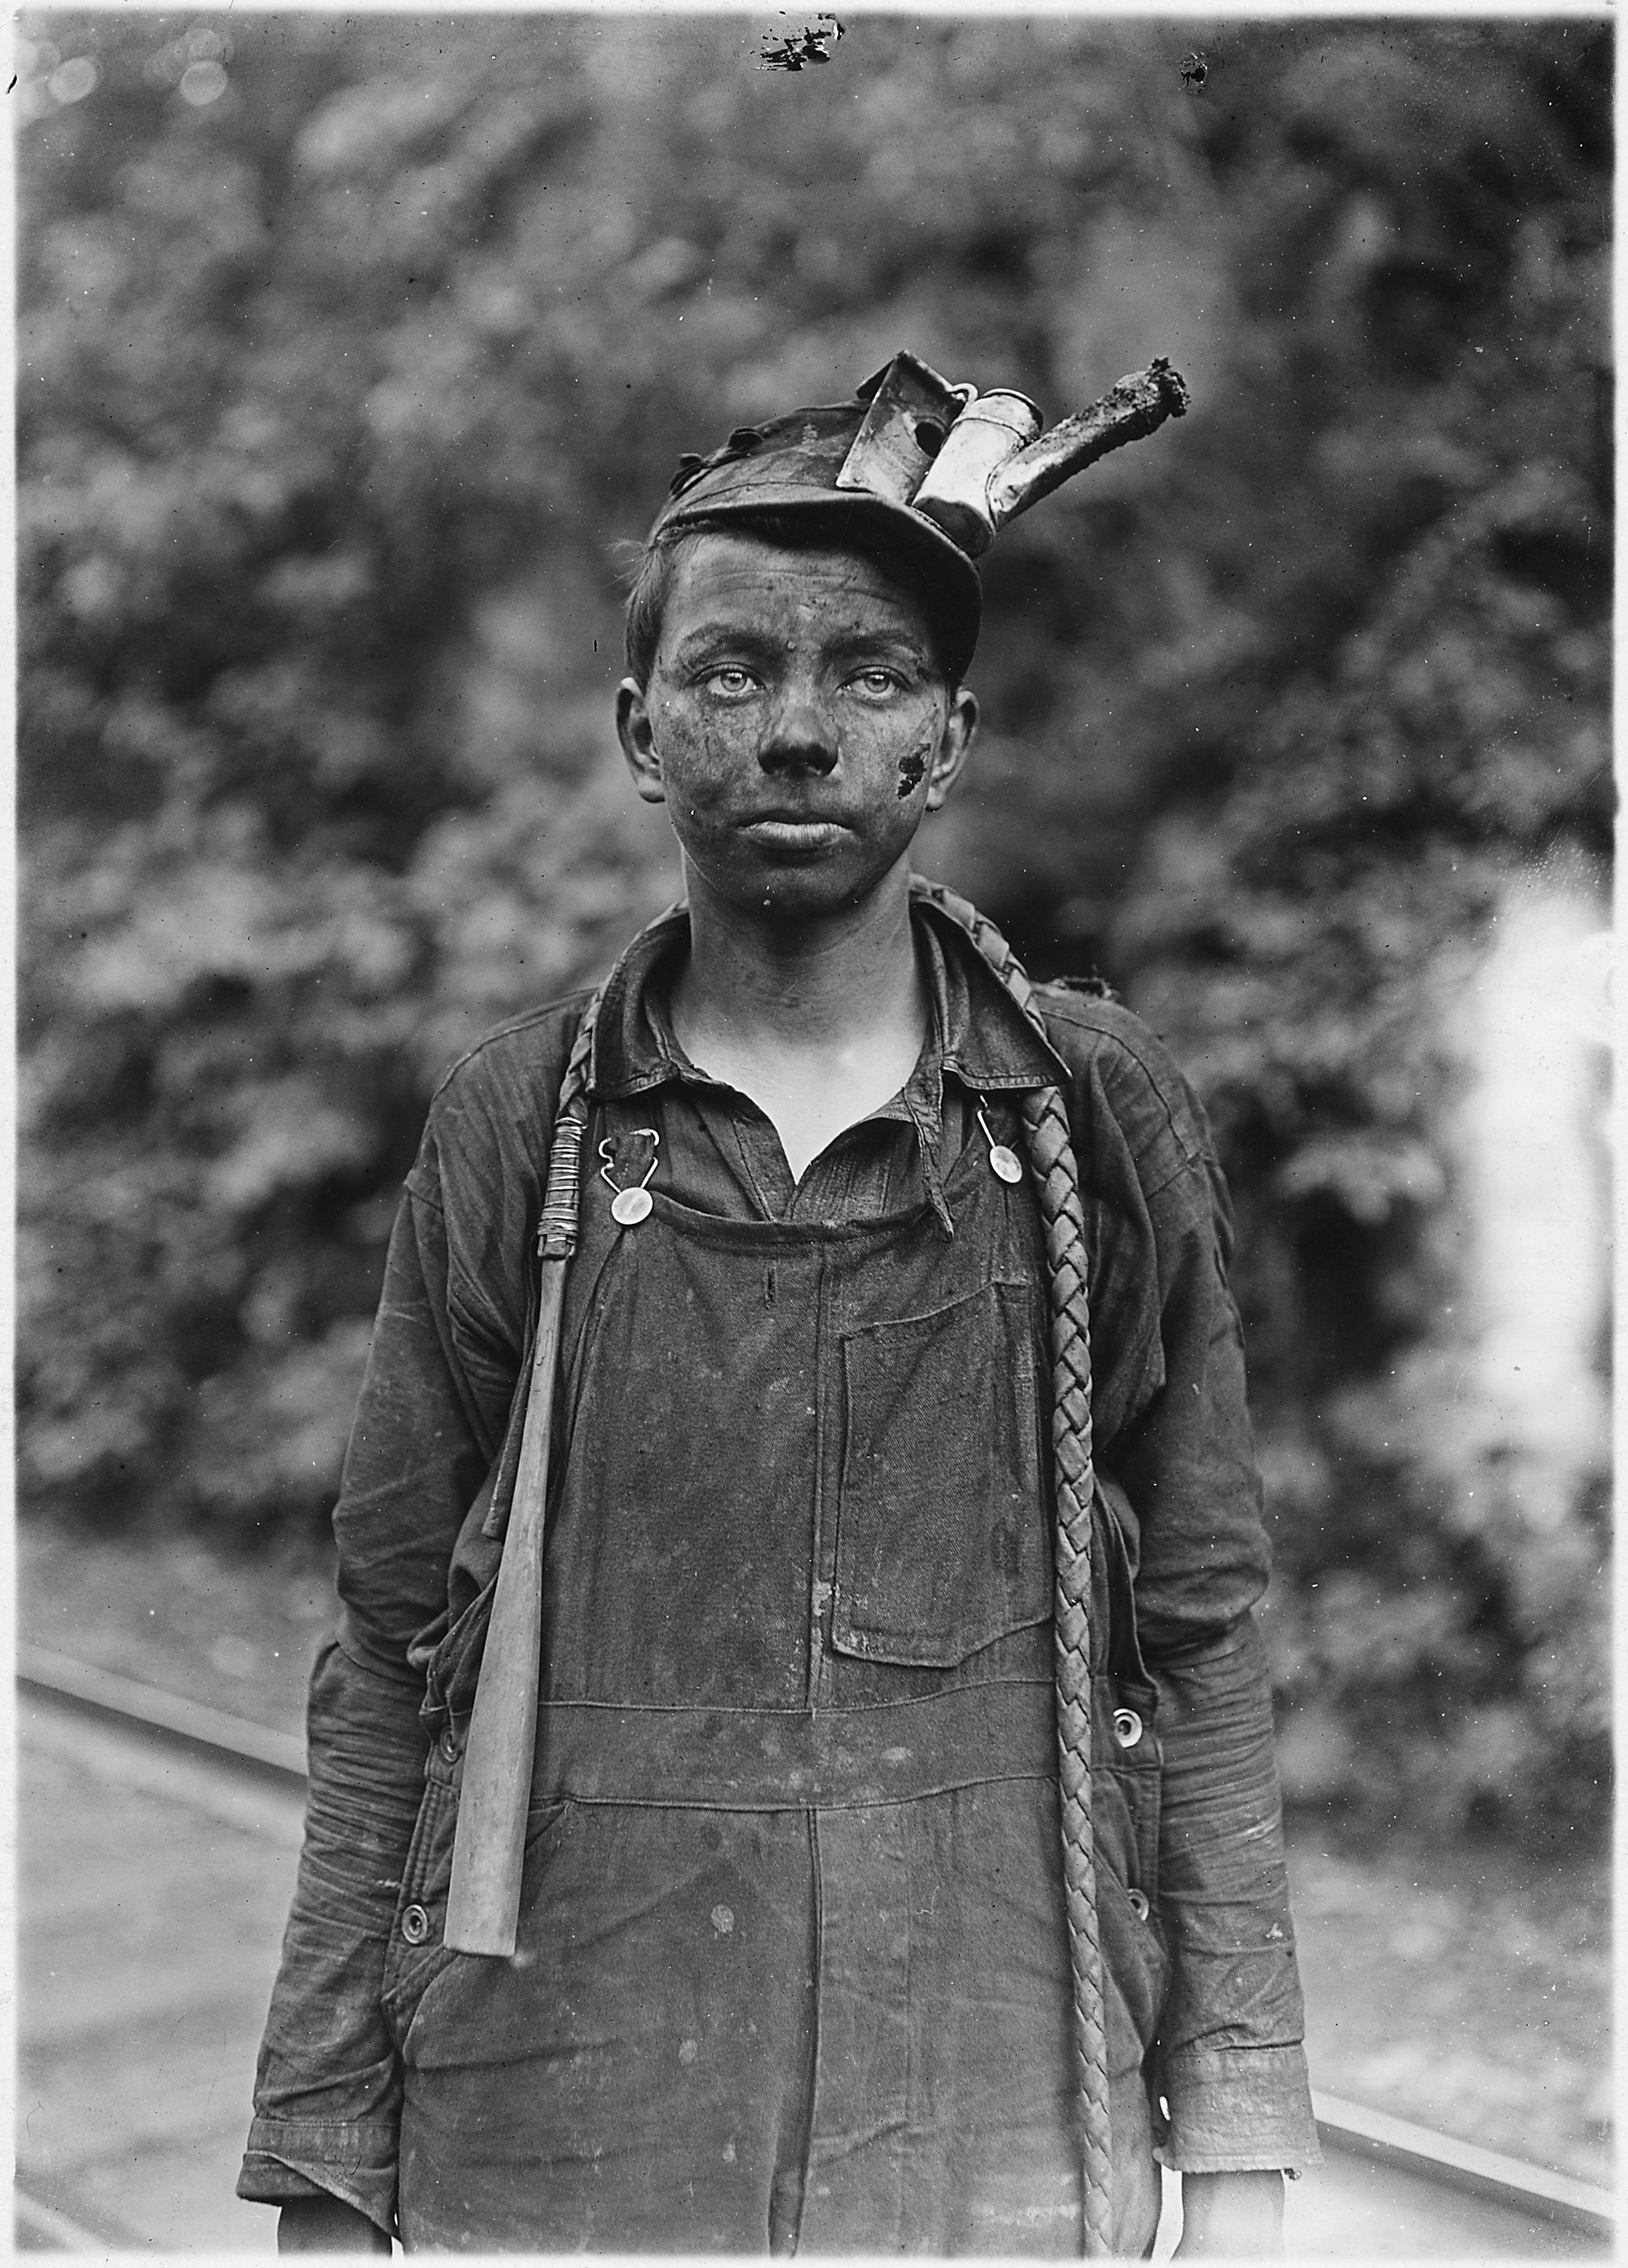 The Depressing Stories Behind 20 Vintage Child Labor Pictures